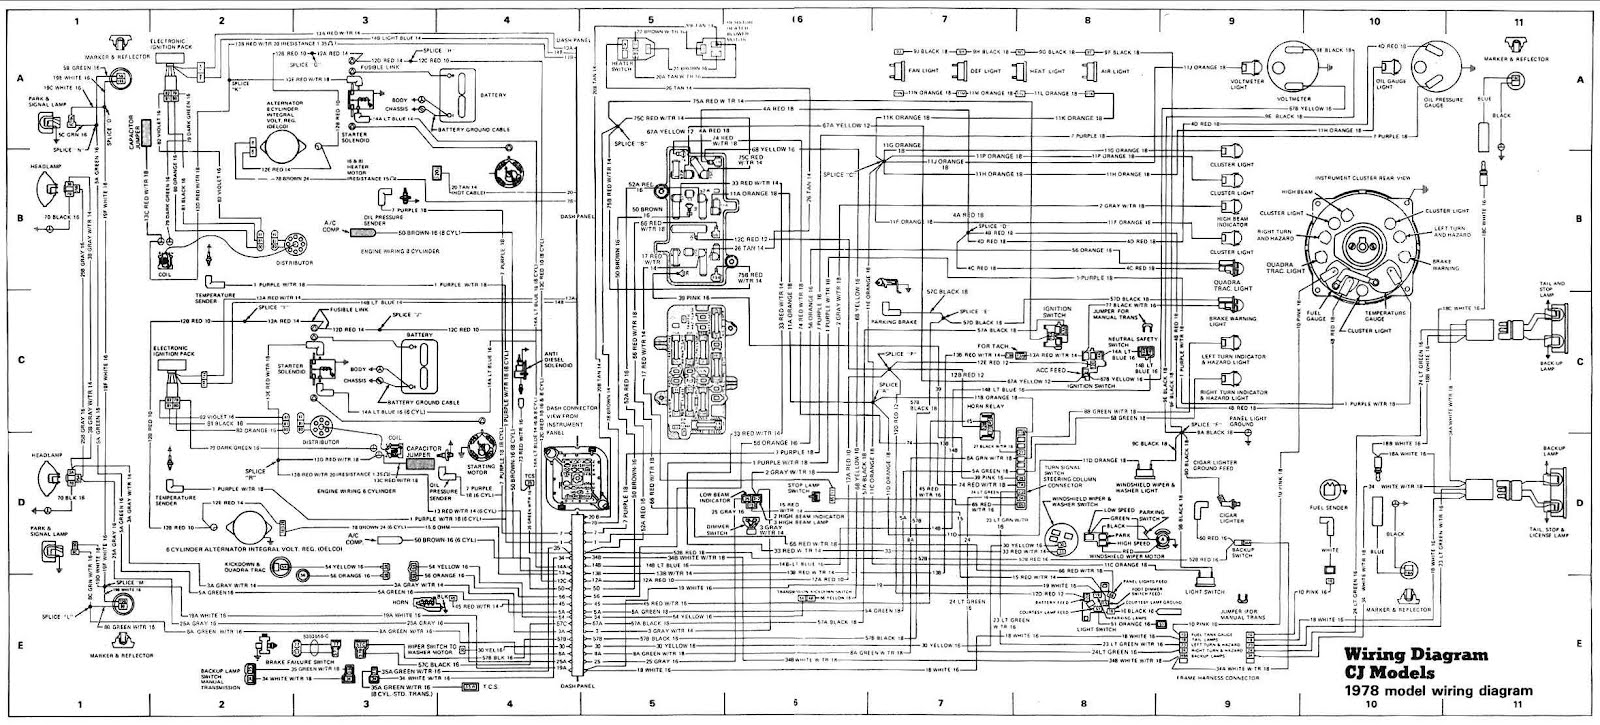 Bmw 740il Radio Wiring Diagram Electrical Diagrams Car Speakers Stereo Trusted 2011 328i